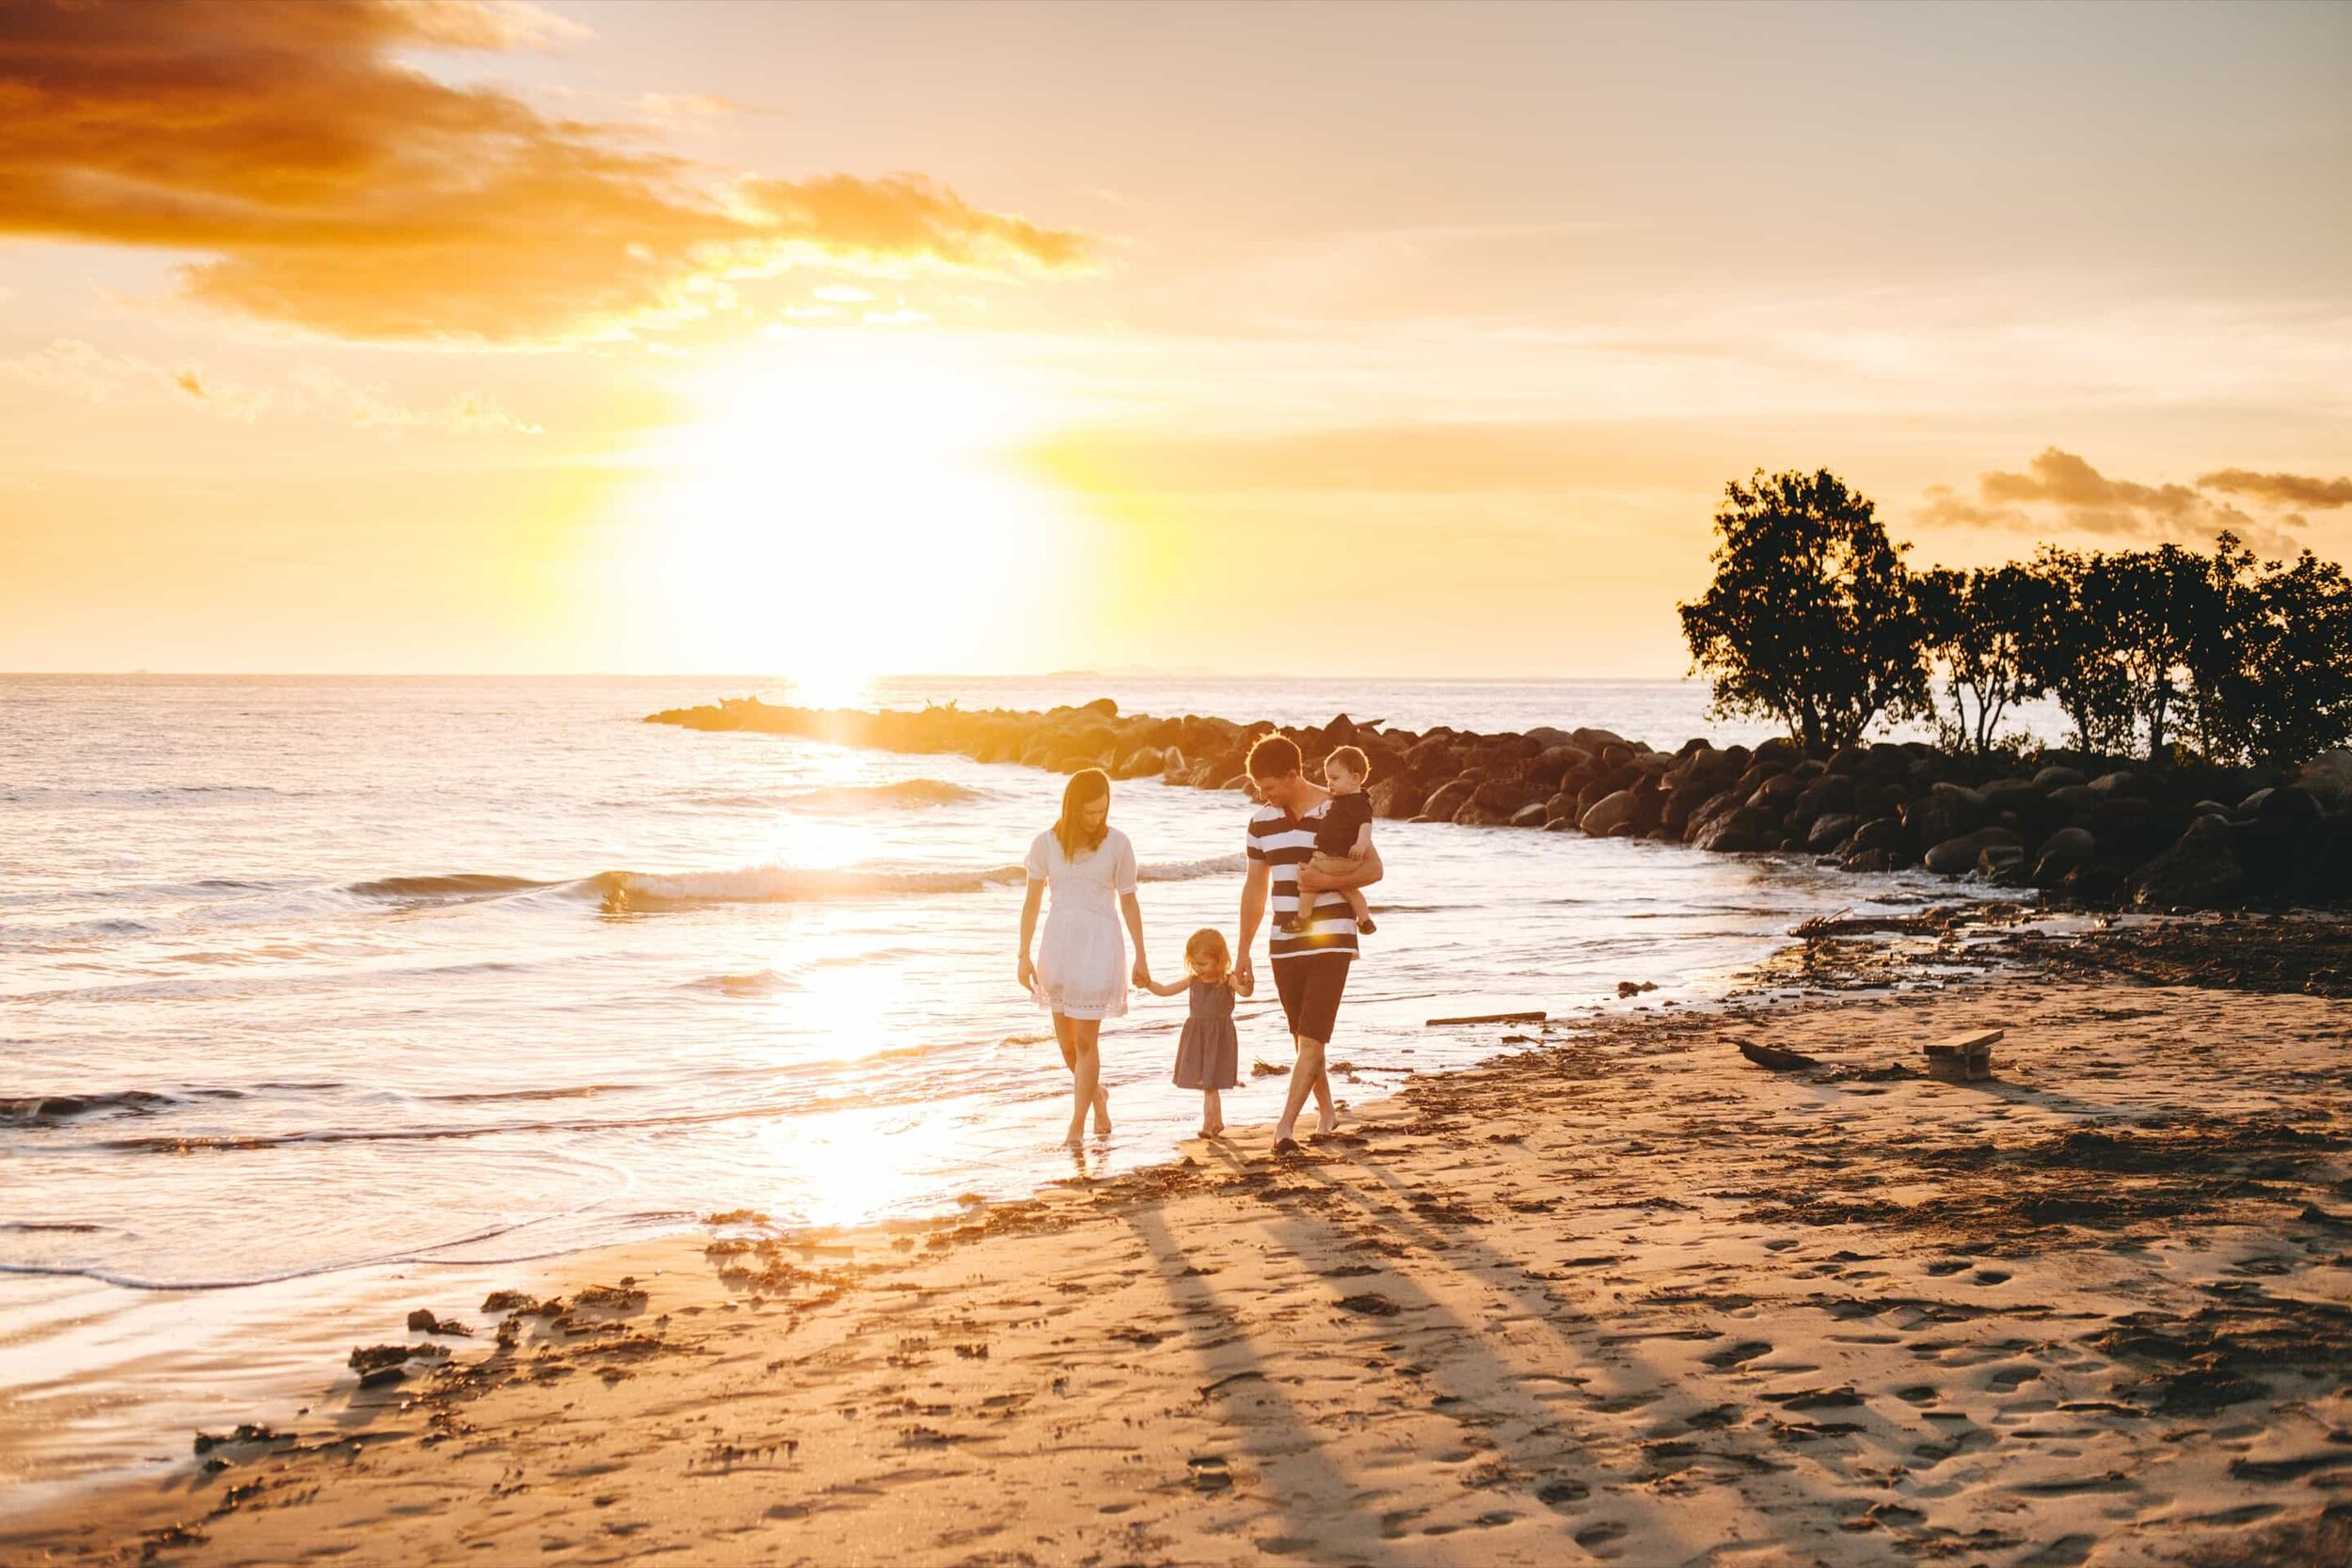 Family holiday photos along the Sheraton Fiji beach at sunset.